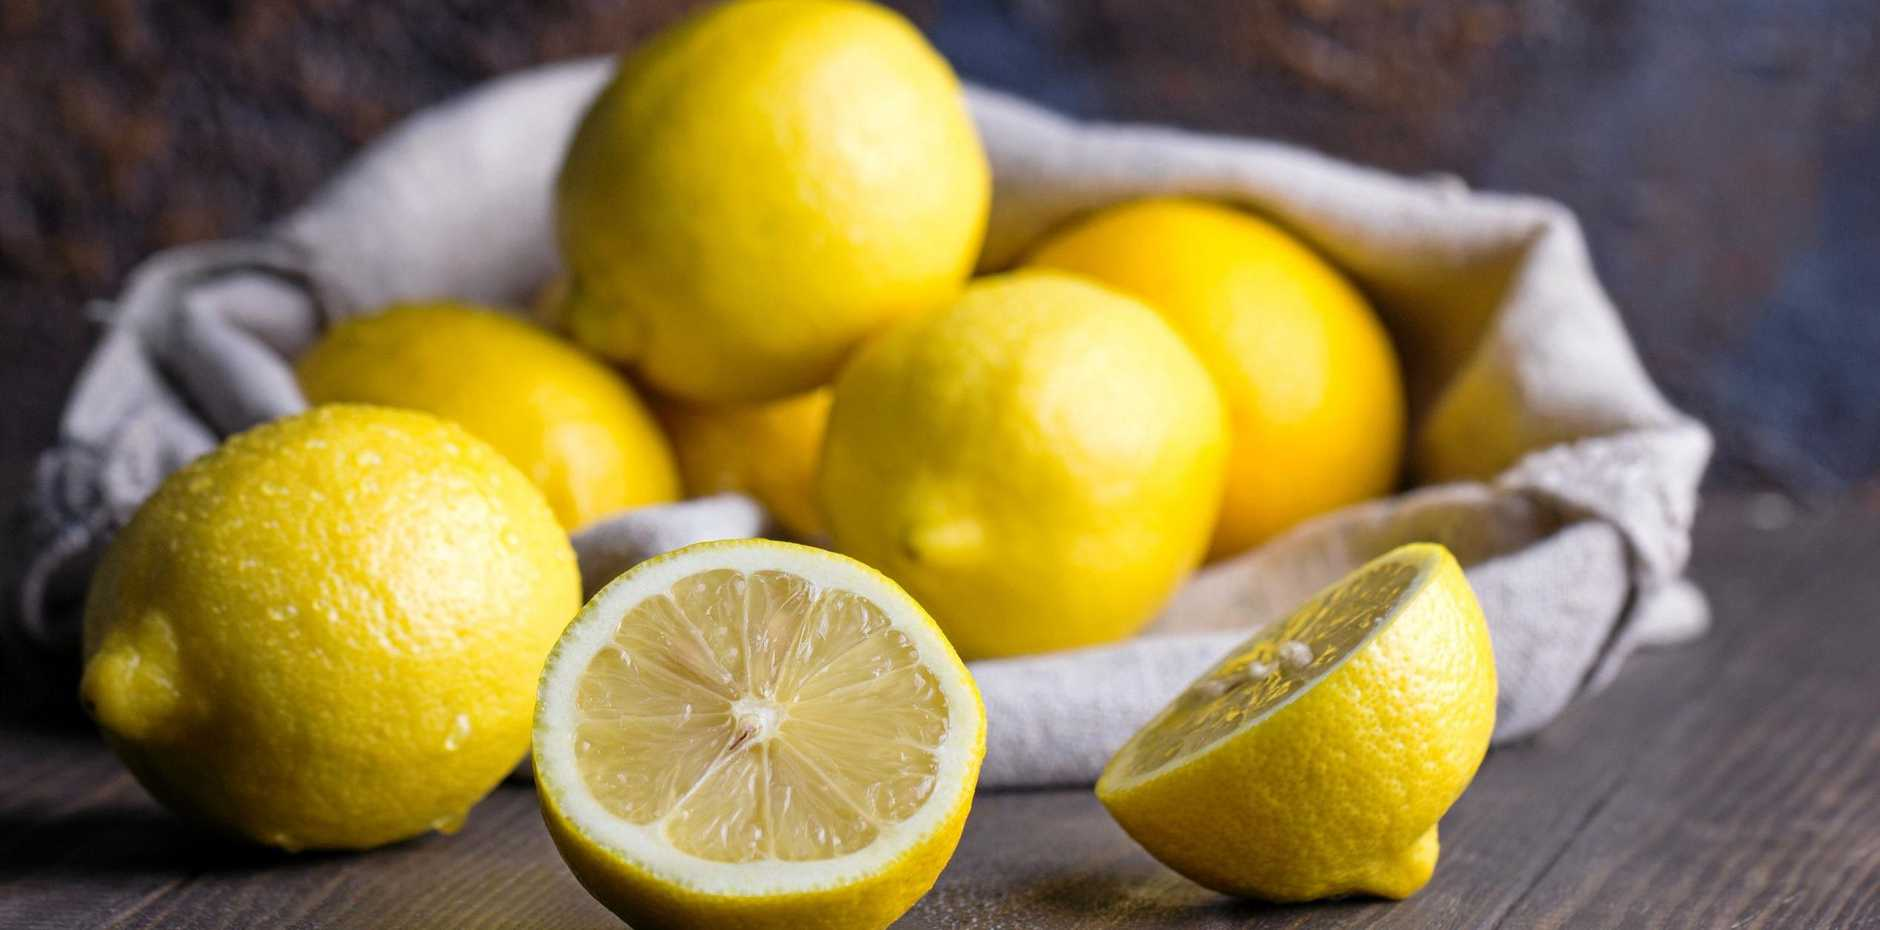 Lemonade lemon trees are great for backyards as they produce lots of fruit.